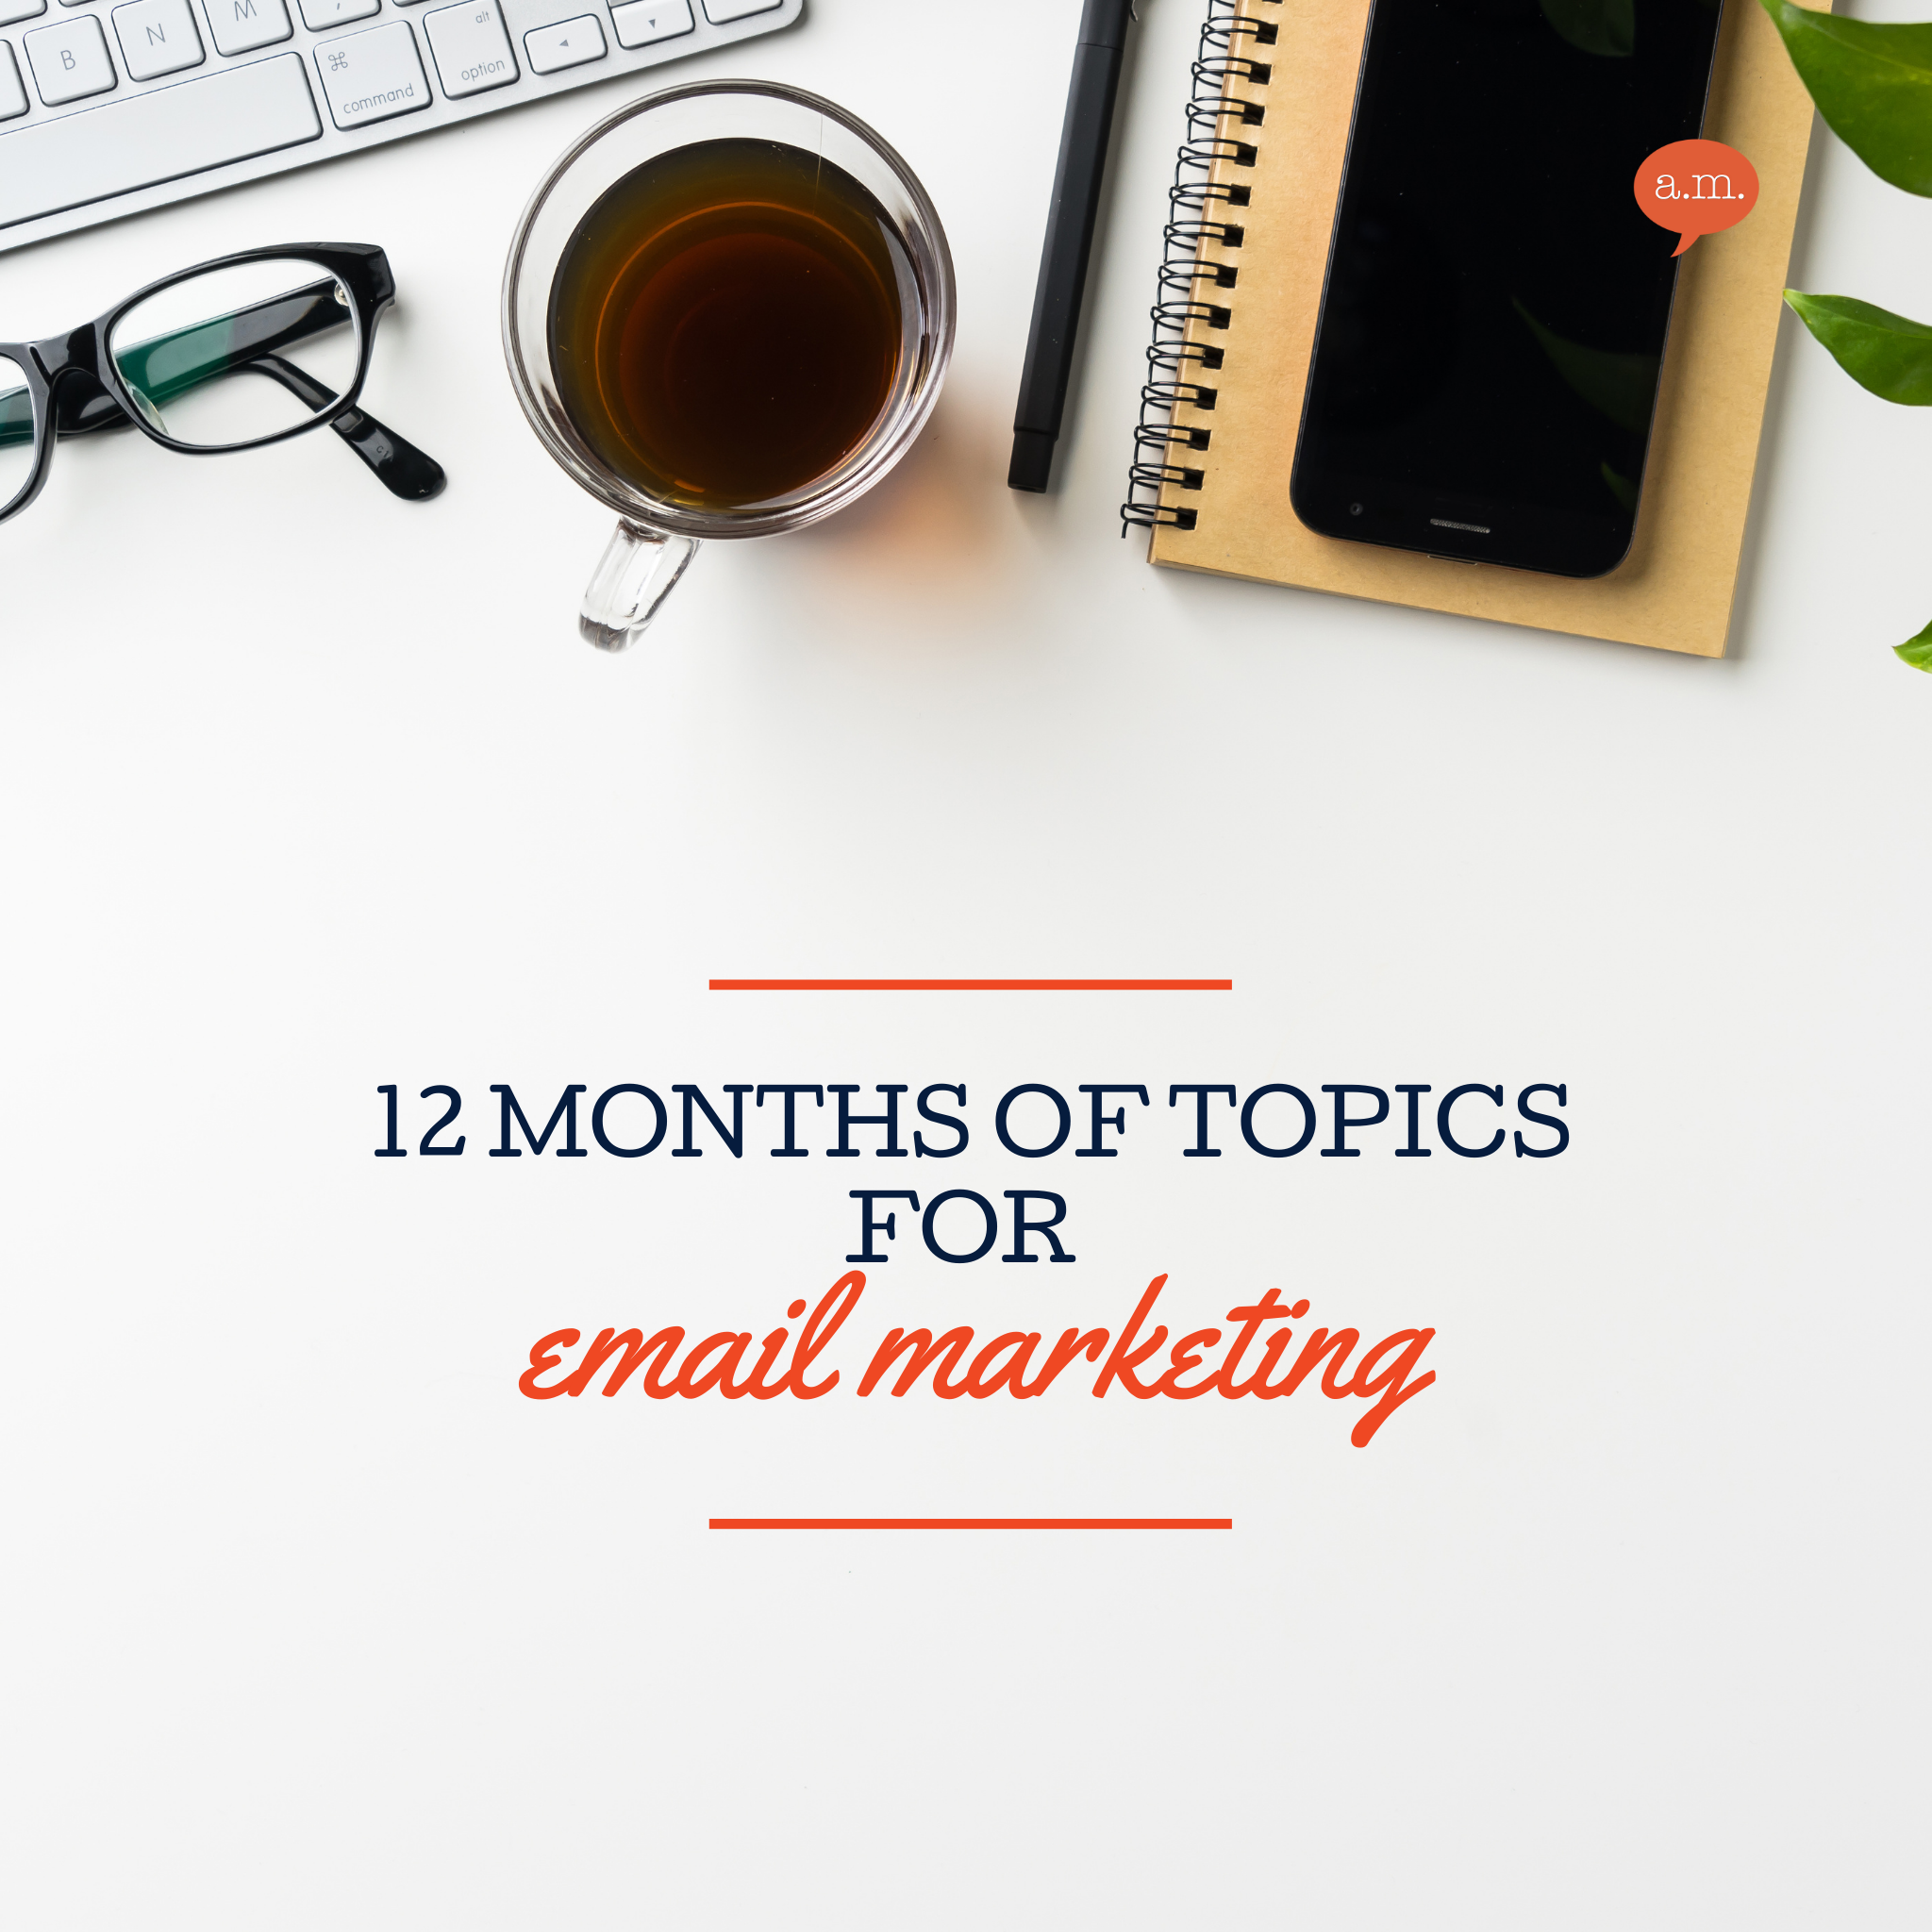 12 Topics For Email Marketing